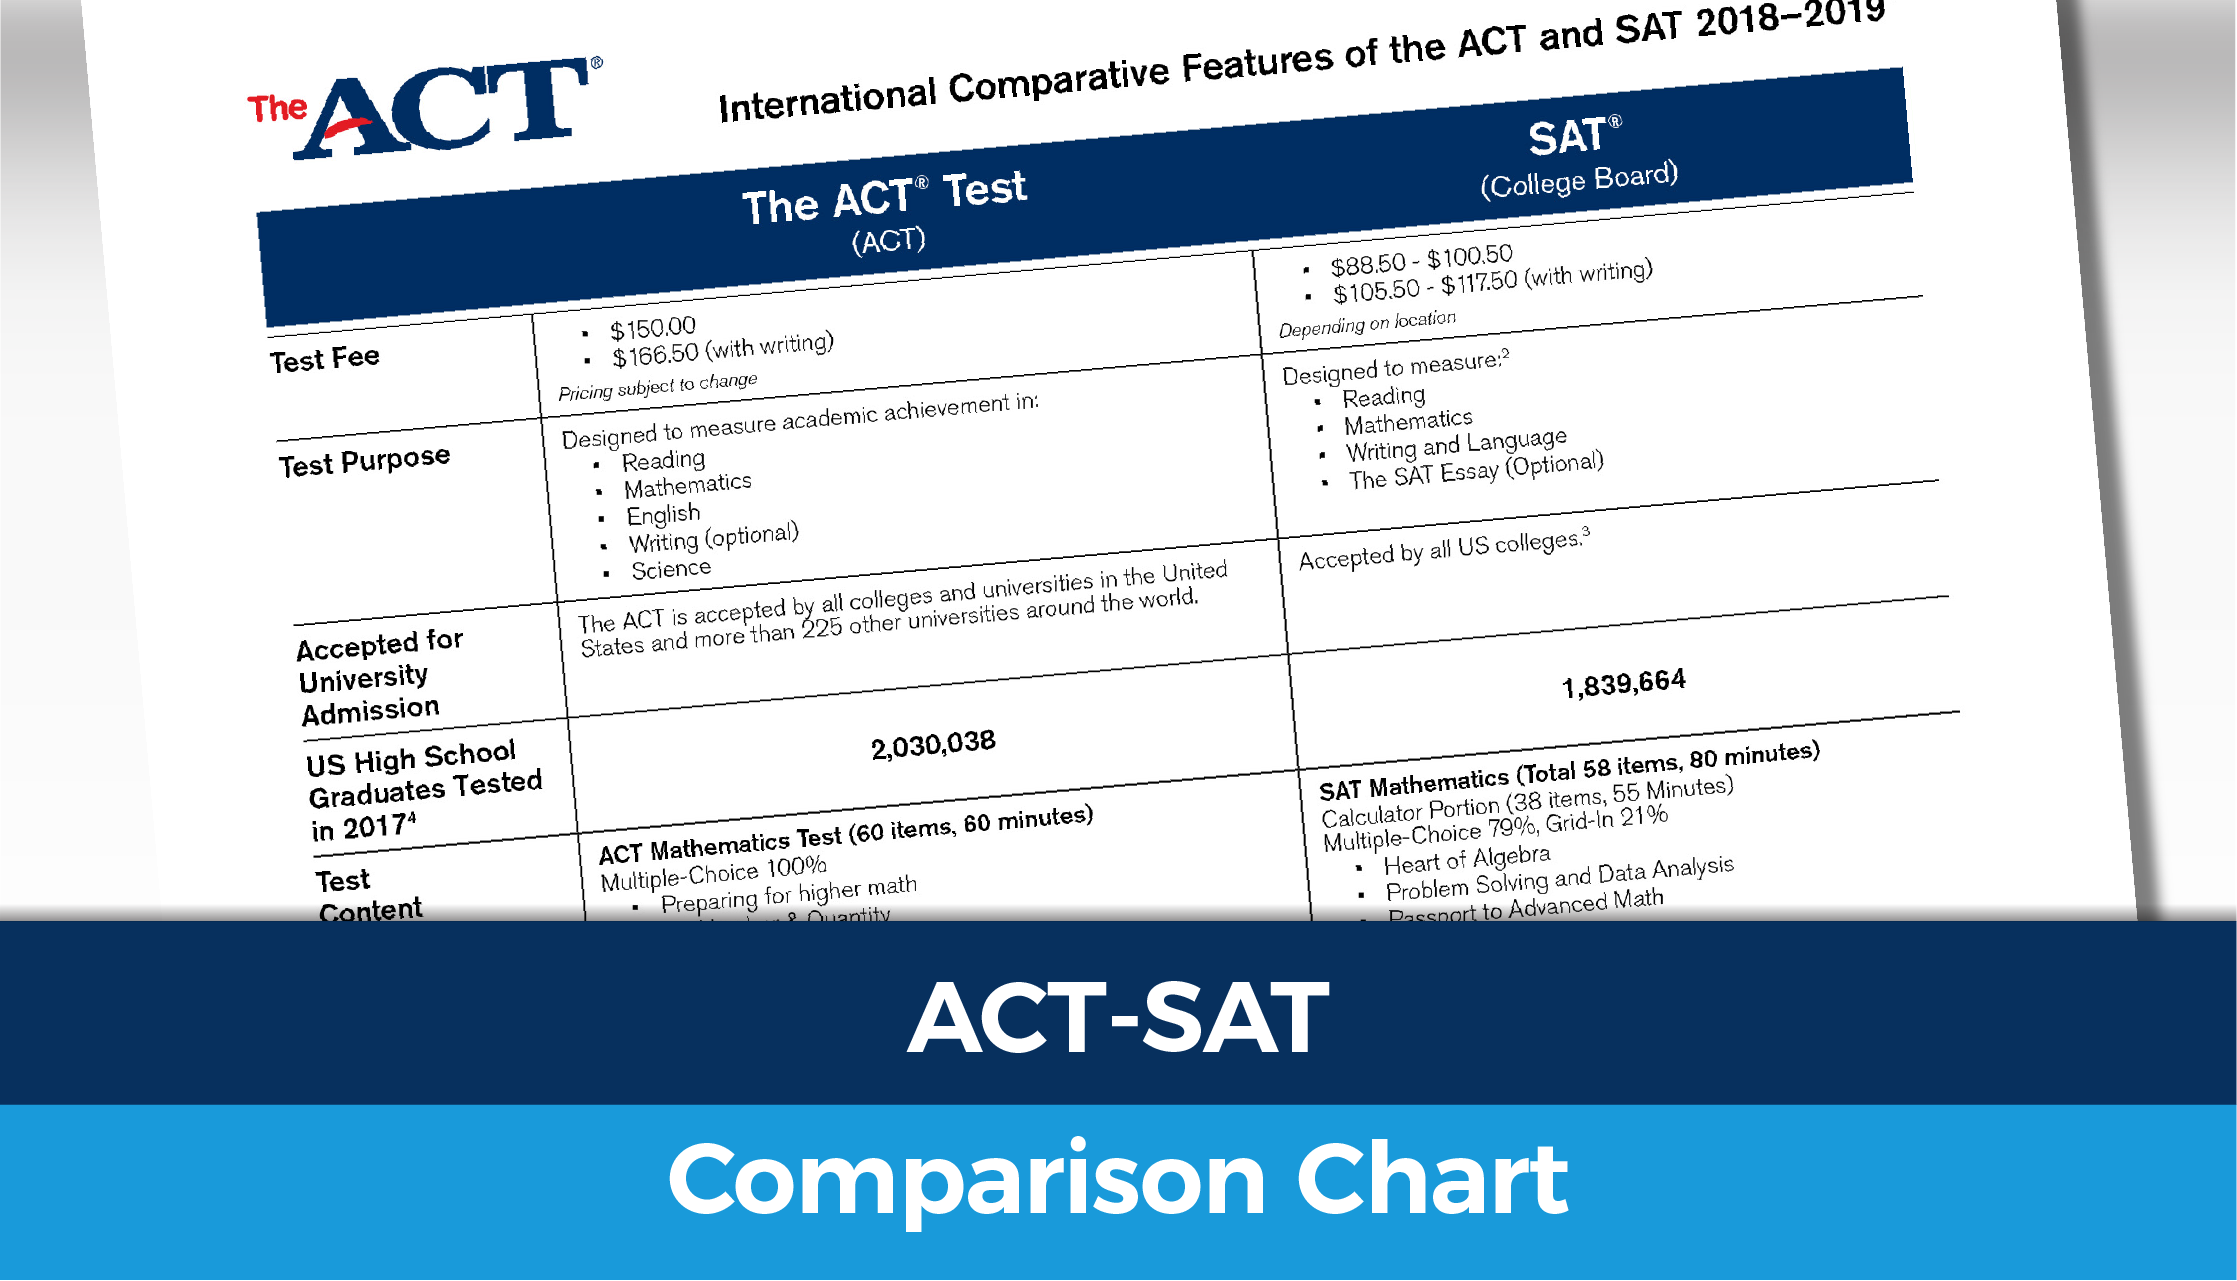 2018 Comparative ACT-SAT features